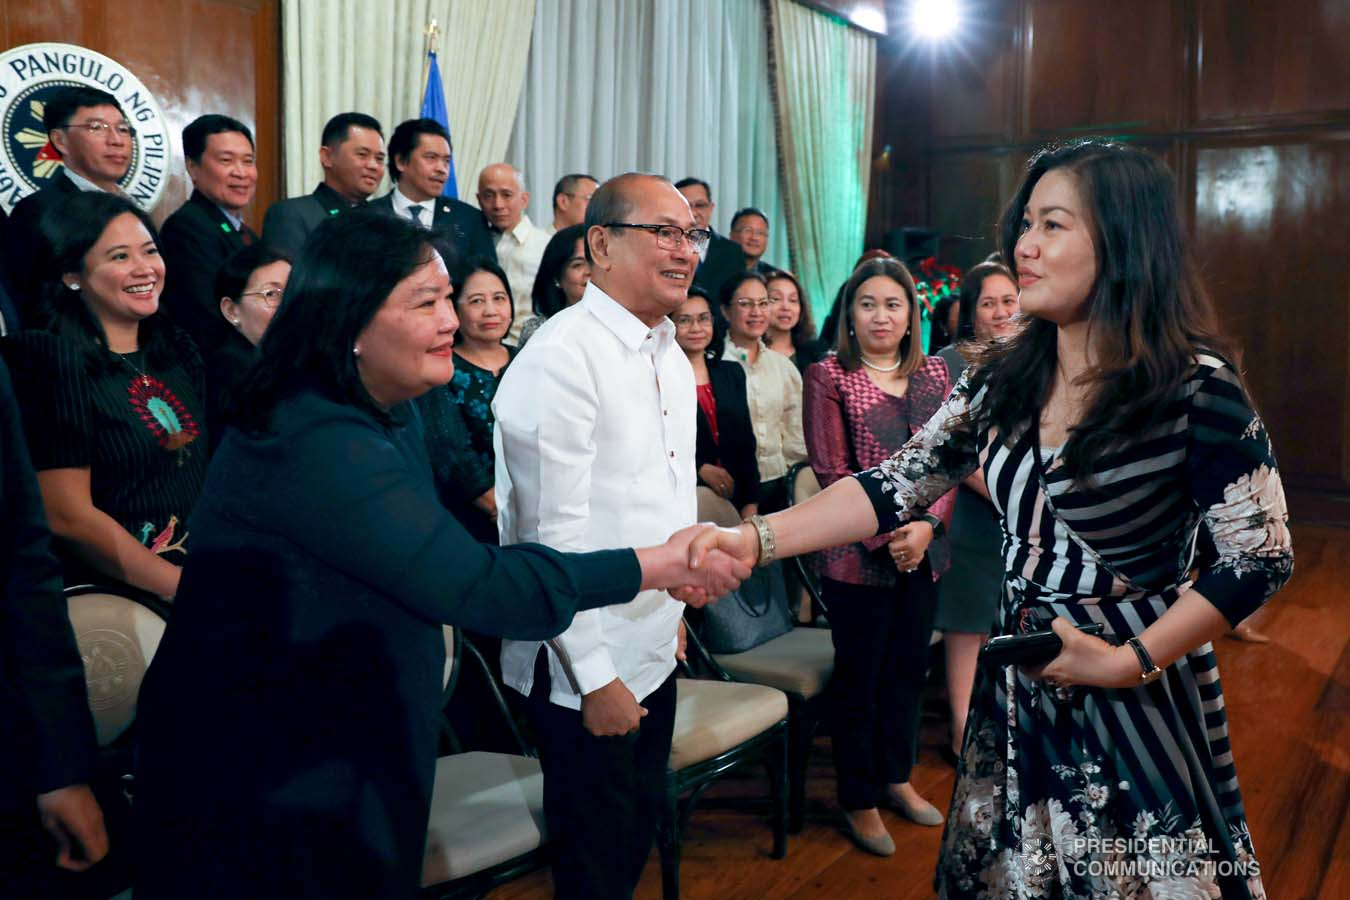 President Rodrigo Roa Duterte's partner Cielito Avanceña greets the Labor Attachés from the Department of Labor and Employment during their meeting at the Malacañan Palace on December 9, 2019. KARL NORMAN ALONZO/PRESIDENTIAL PHOTO